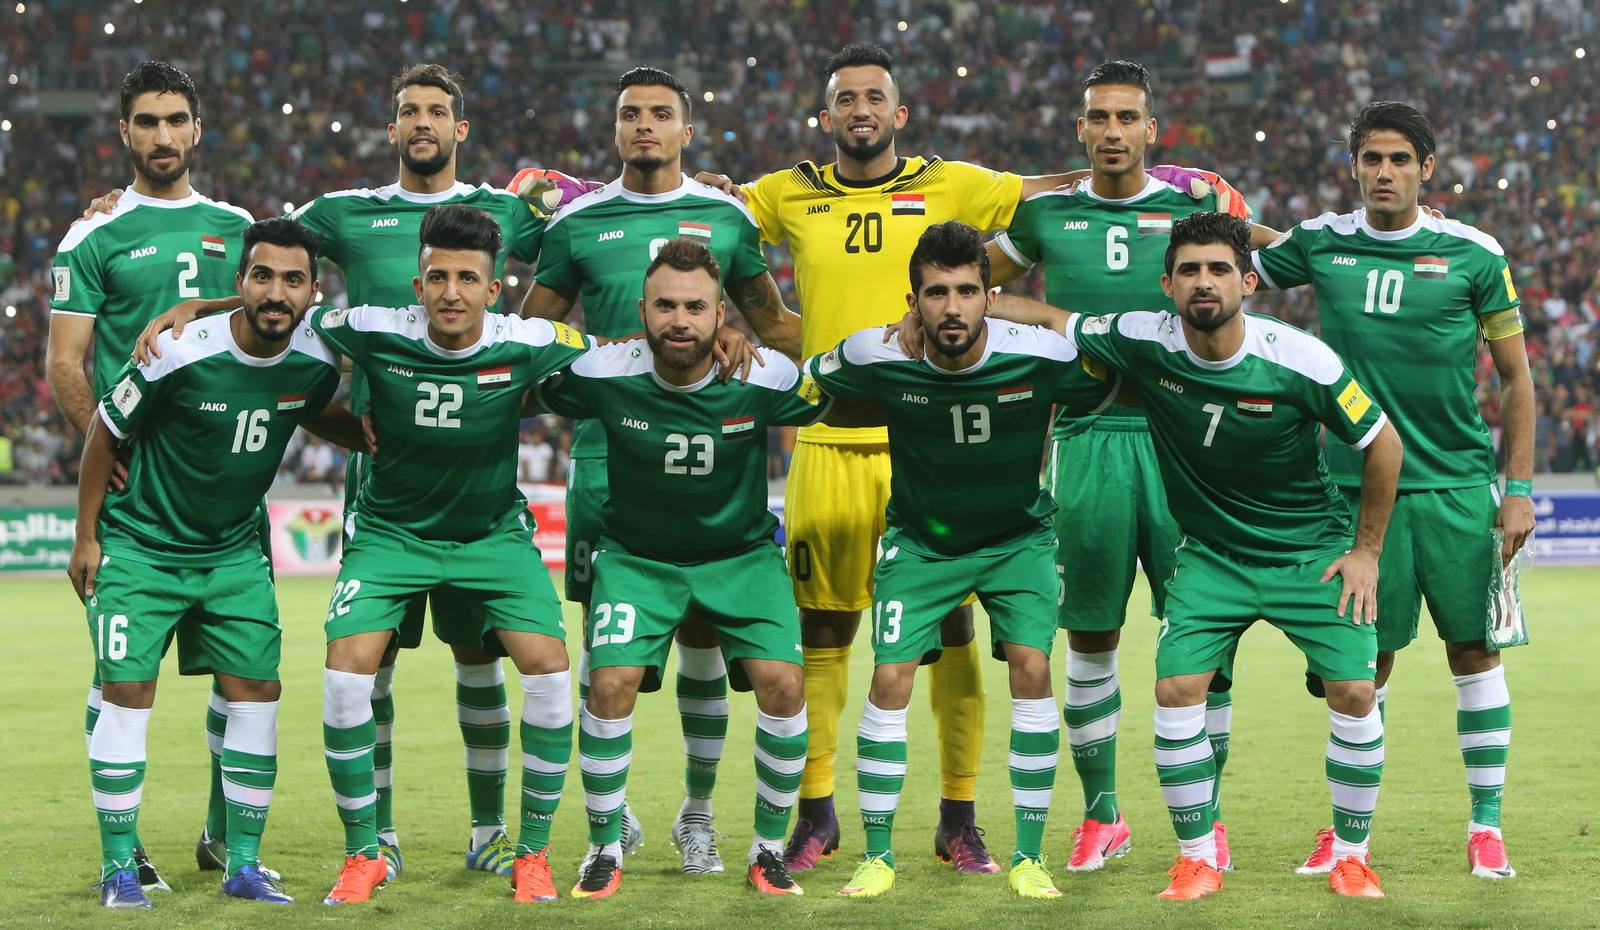 Iraq Jako home jersey back by popular demand